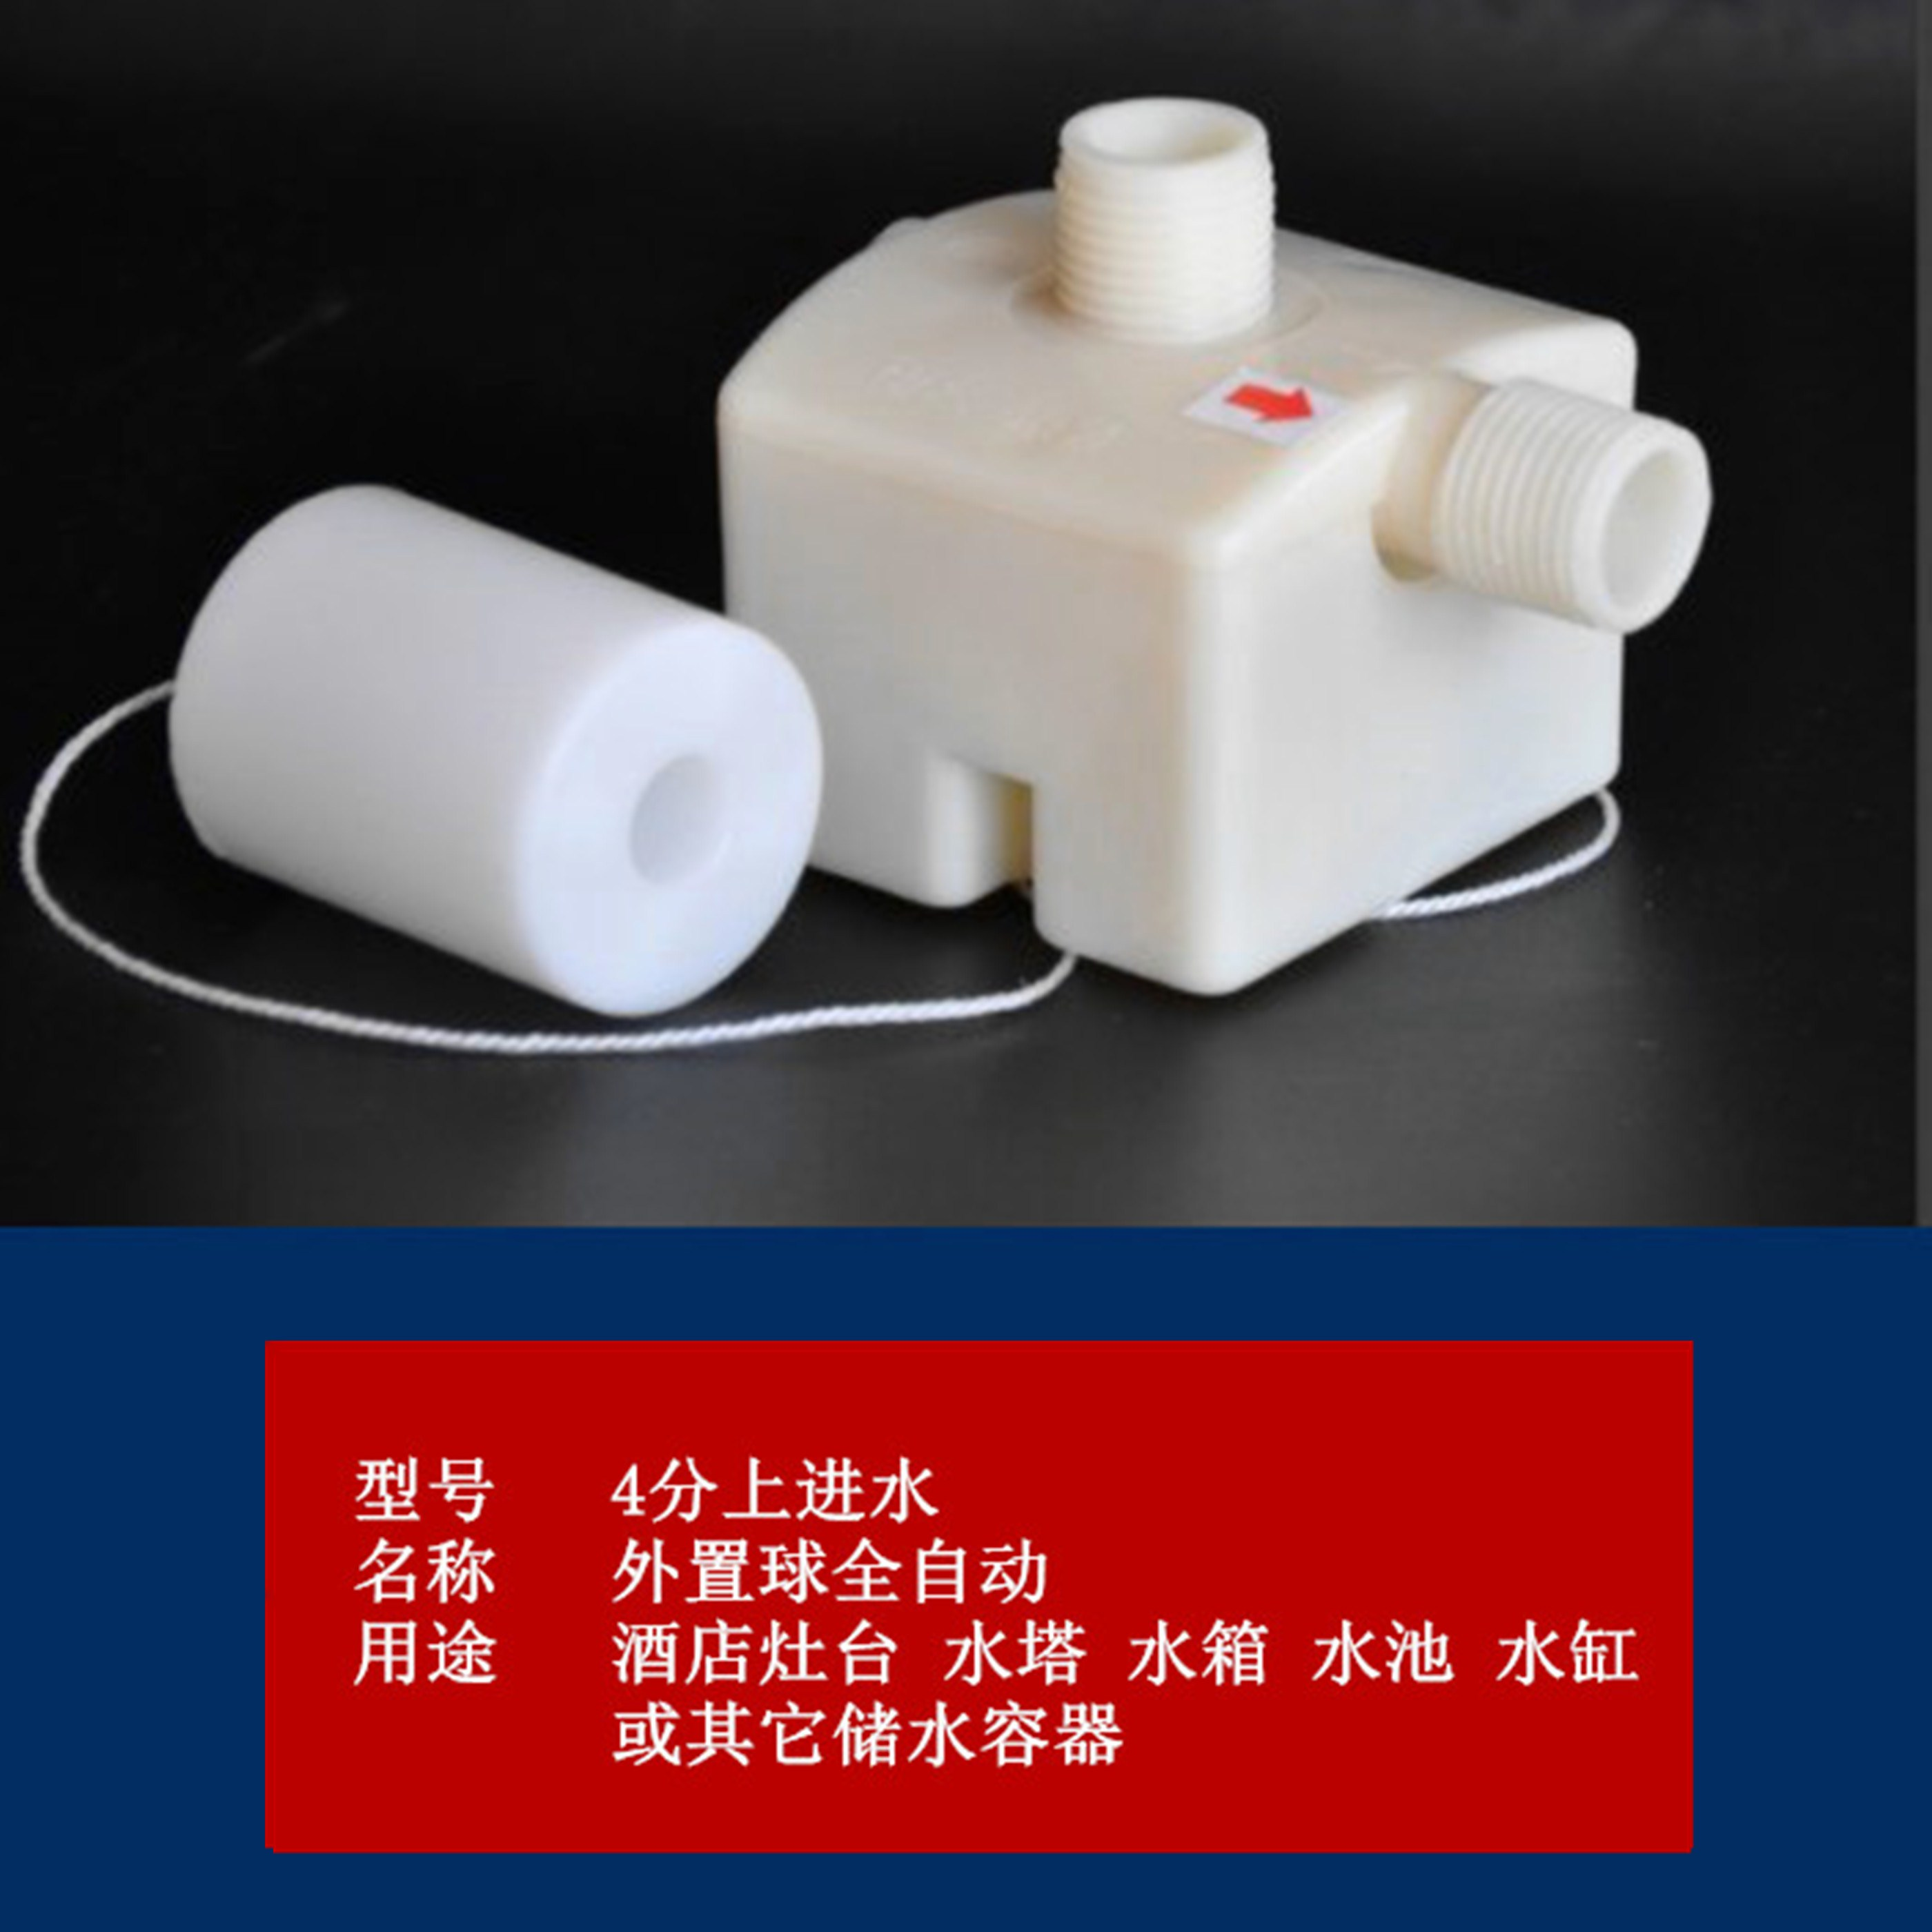 6 point full automatic water level control valve, water tower, water tank float valve, two generation stainless steel plastic valve level switch